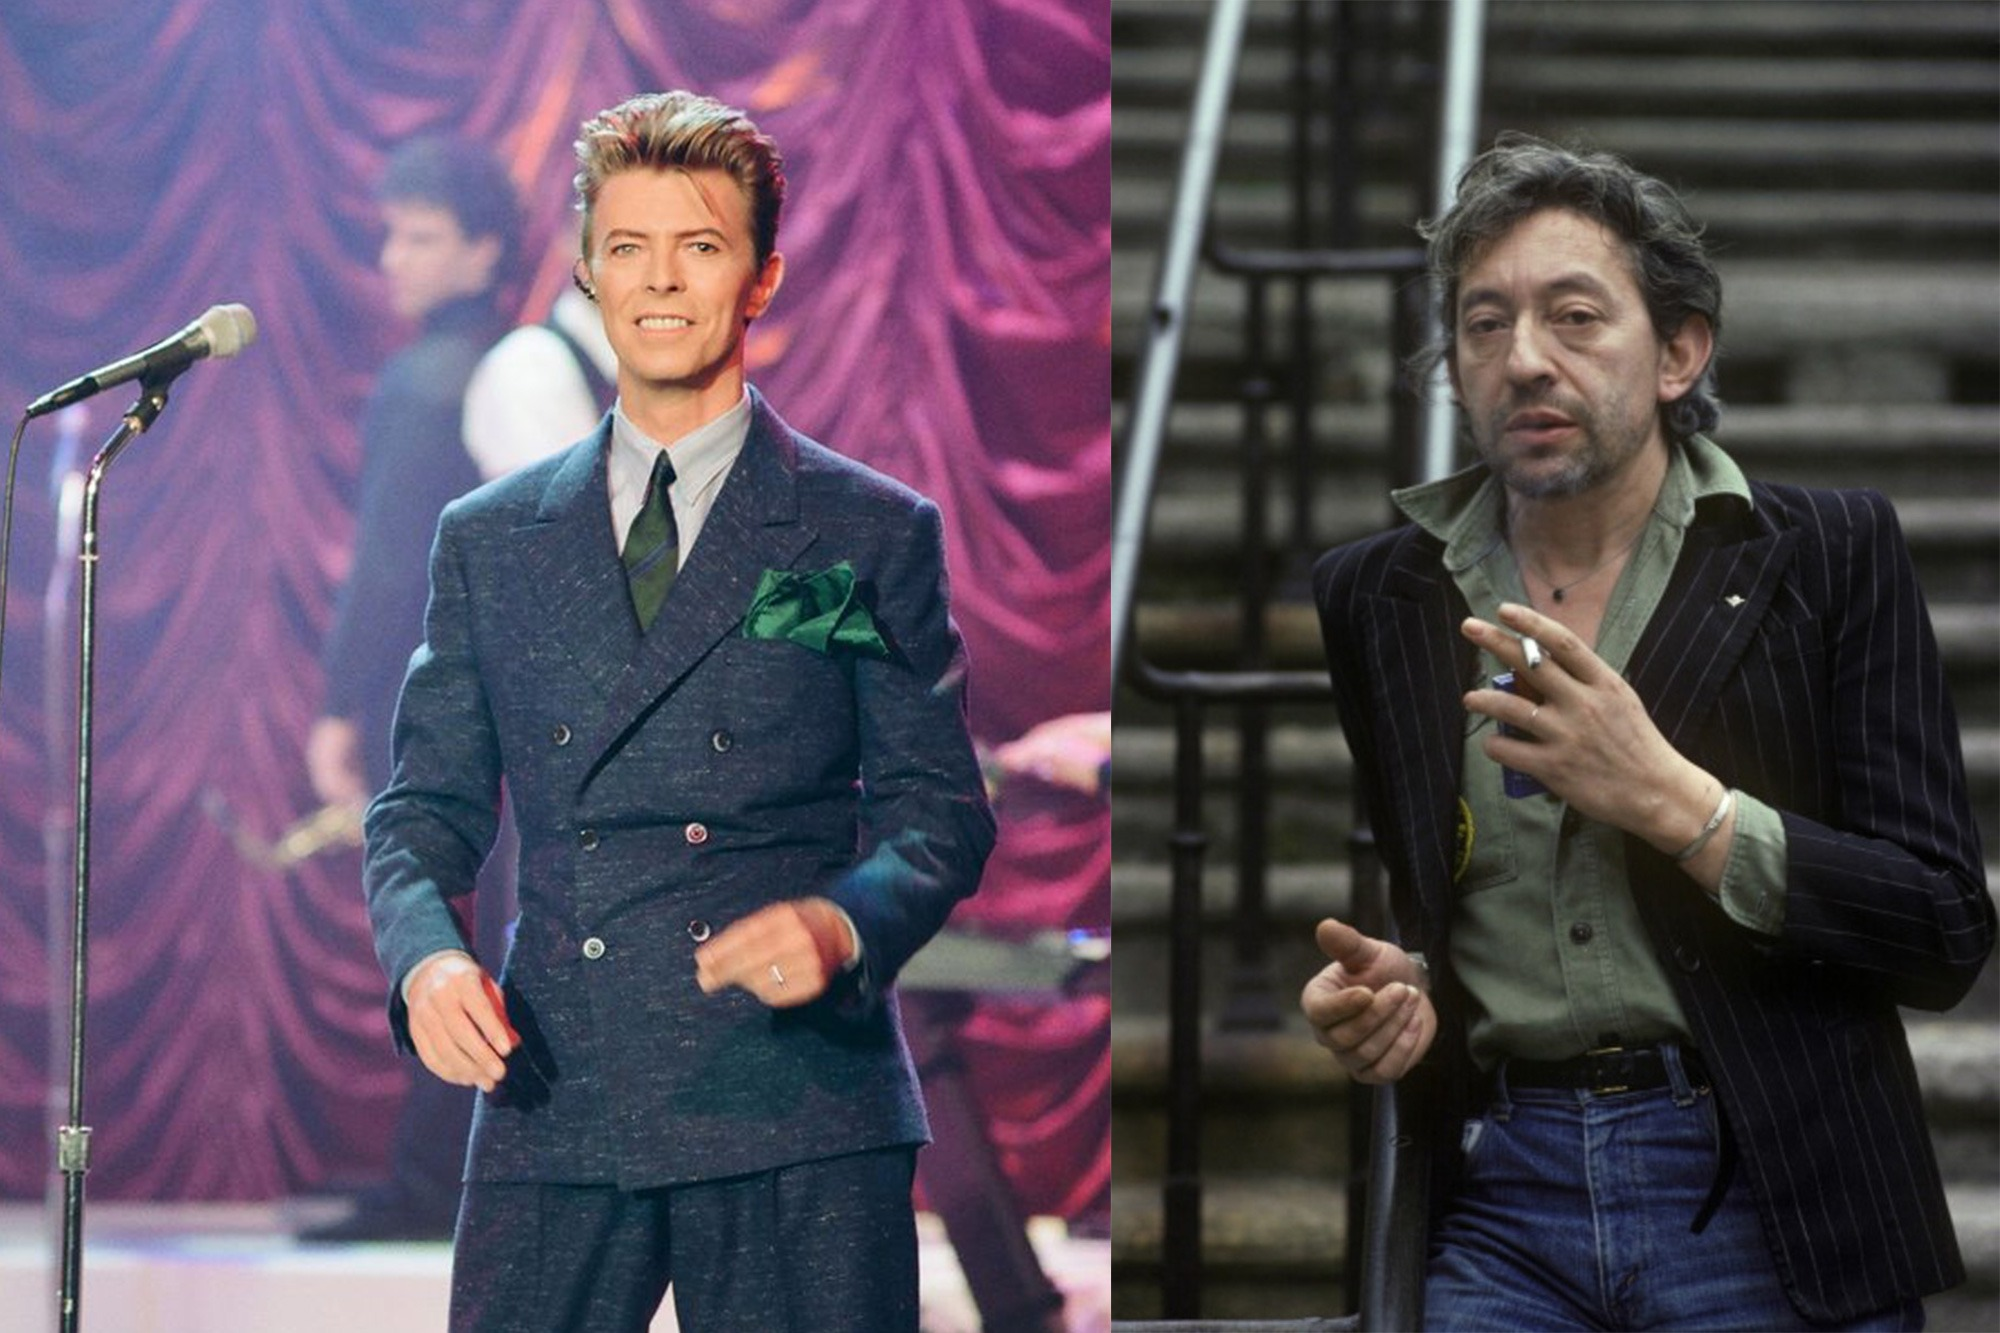 Icones de style Husbands - David Bowie et Serge Gainsbourg